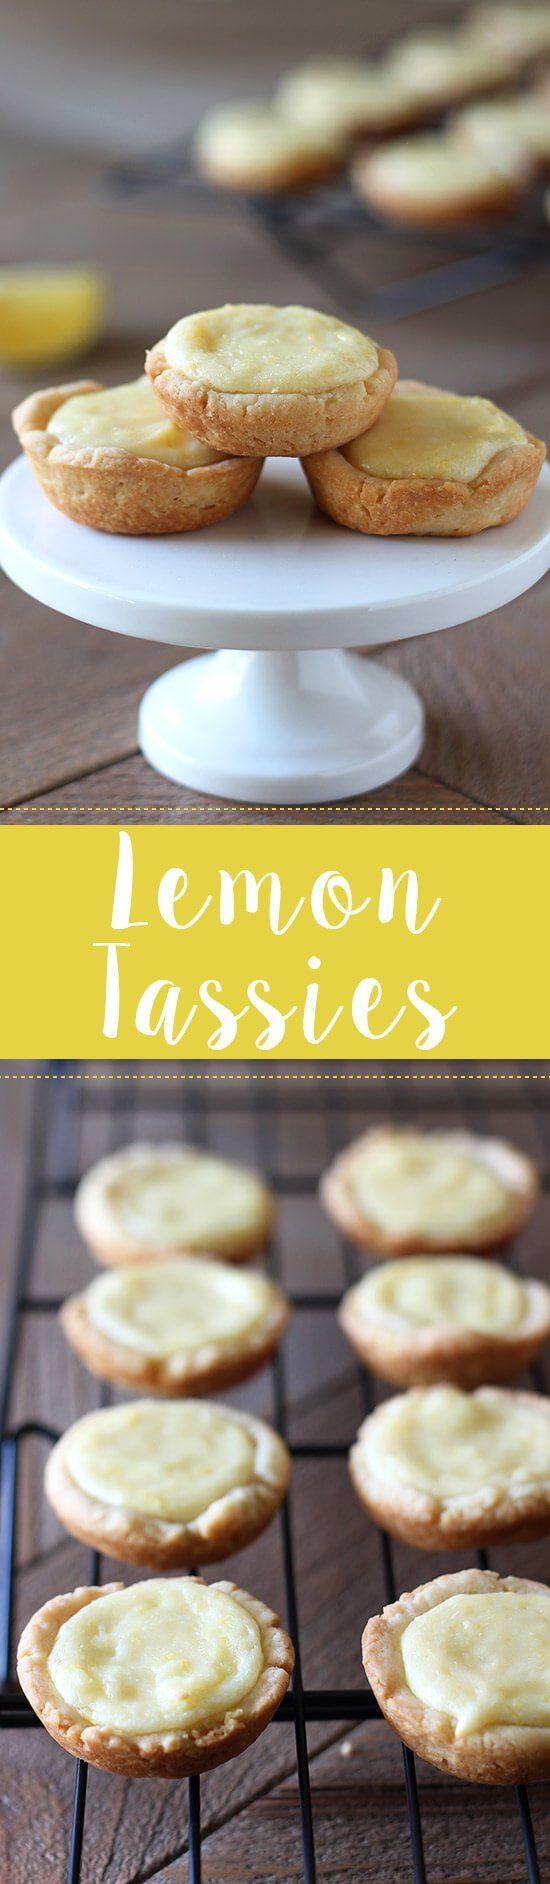 SO GOOD. Adorably bite-sized Lemon Tassies are bursting with fresh and tangy citrus flavor and are simple and easy to make - perfect for entertaining!